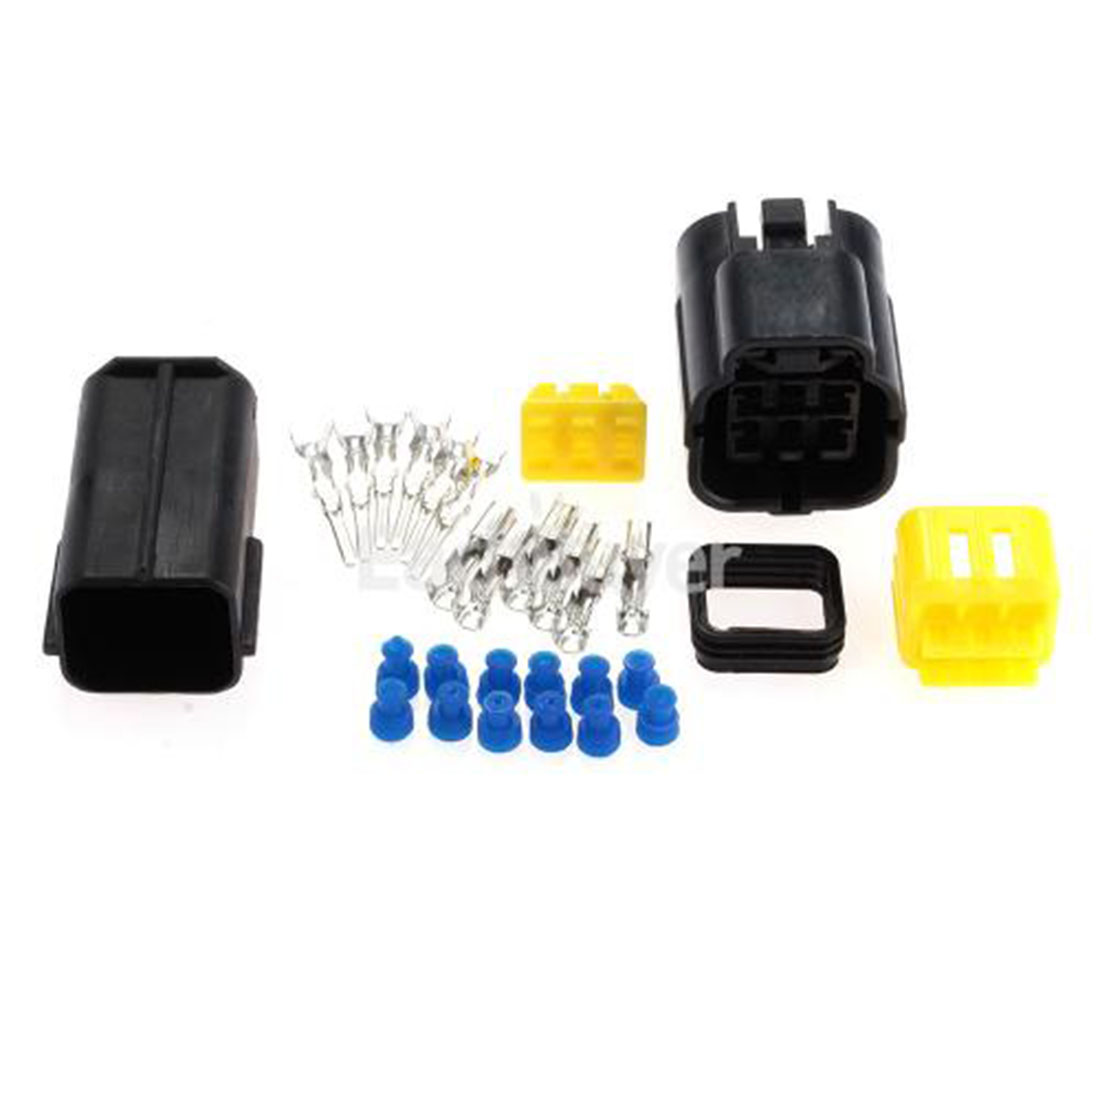 Гаджет  For Set Car Truck Boat ect 1 Kit 6 Pin Way Waterproof Wire Connector Plug Car Auto Sealed Electrical Set None Электротехническое оборудование и материалы